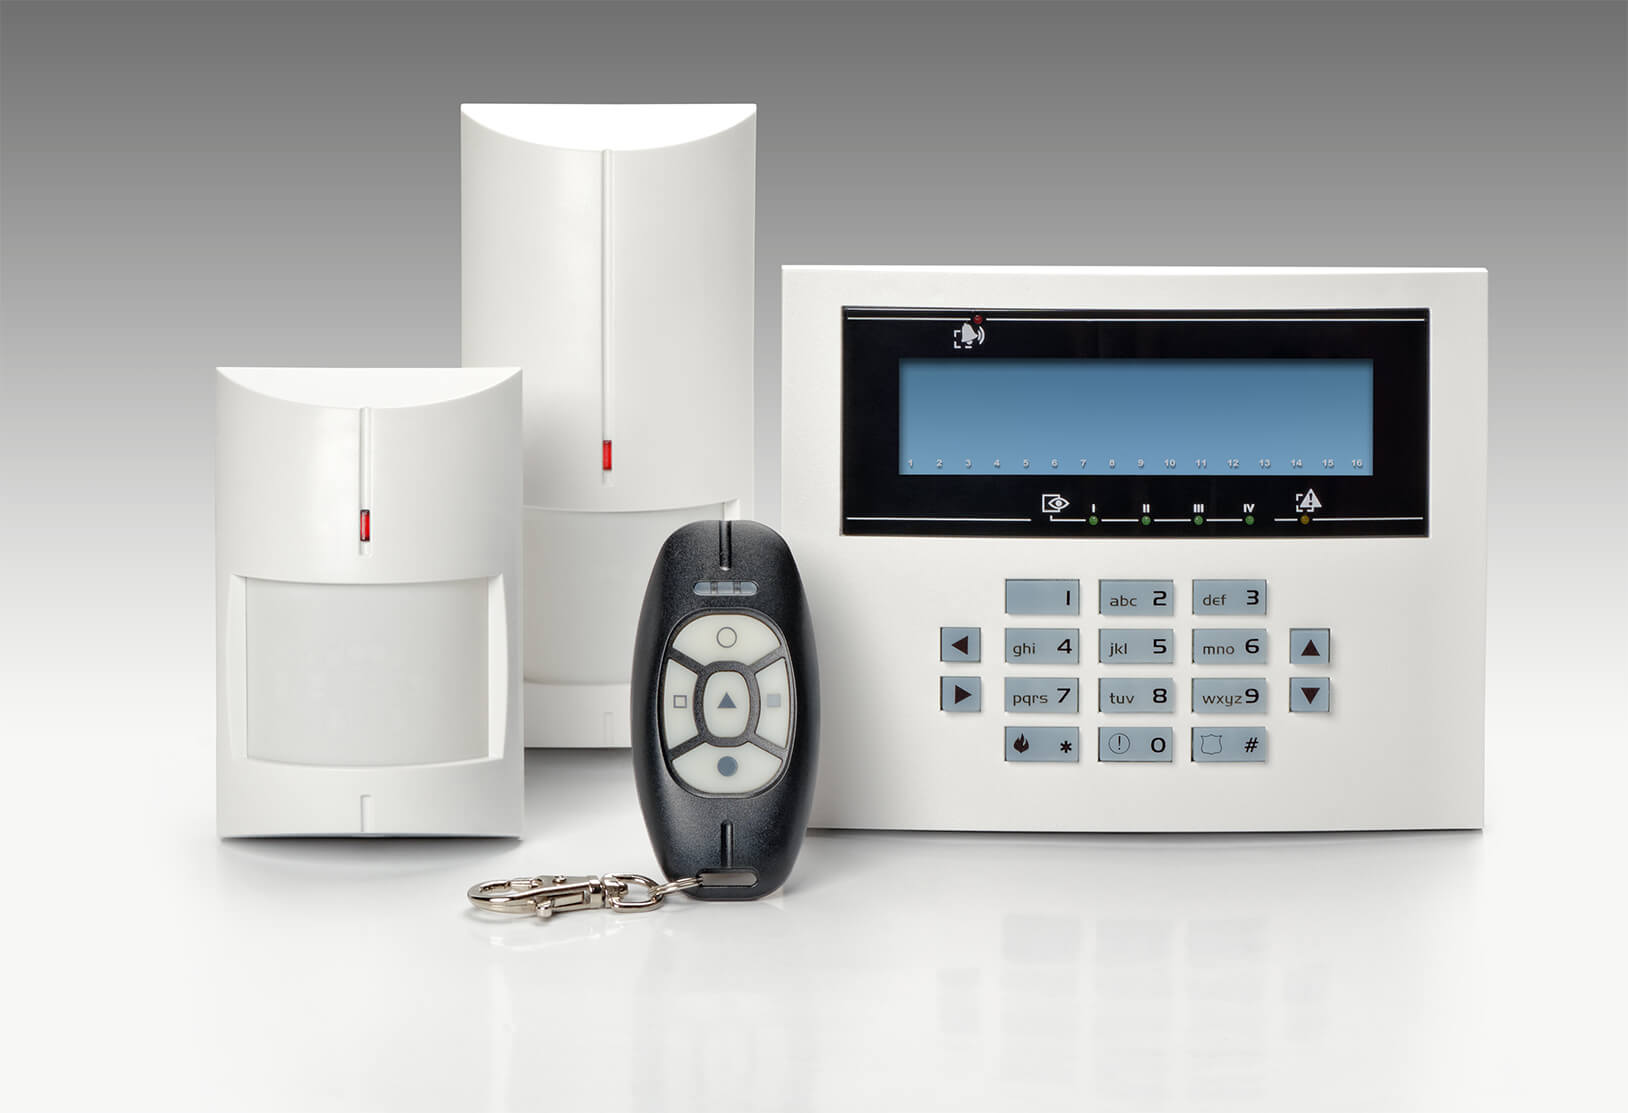 Commercial Burglar Alarms For Business in Chelsea SW1  - Local Chelsea SW1 burglar alarm company.Call 02078872244 - Dedicated to Safety & Security. Companies, shops and homes ..